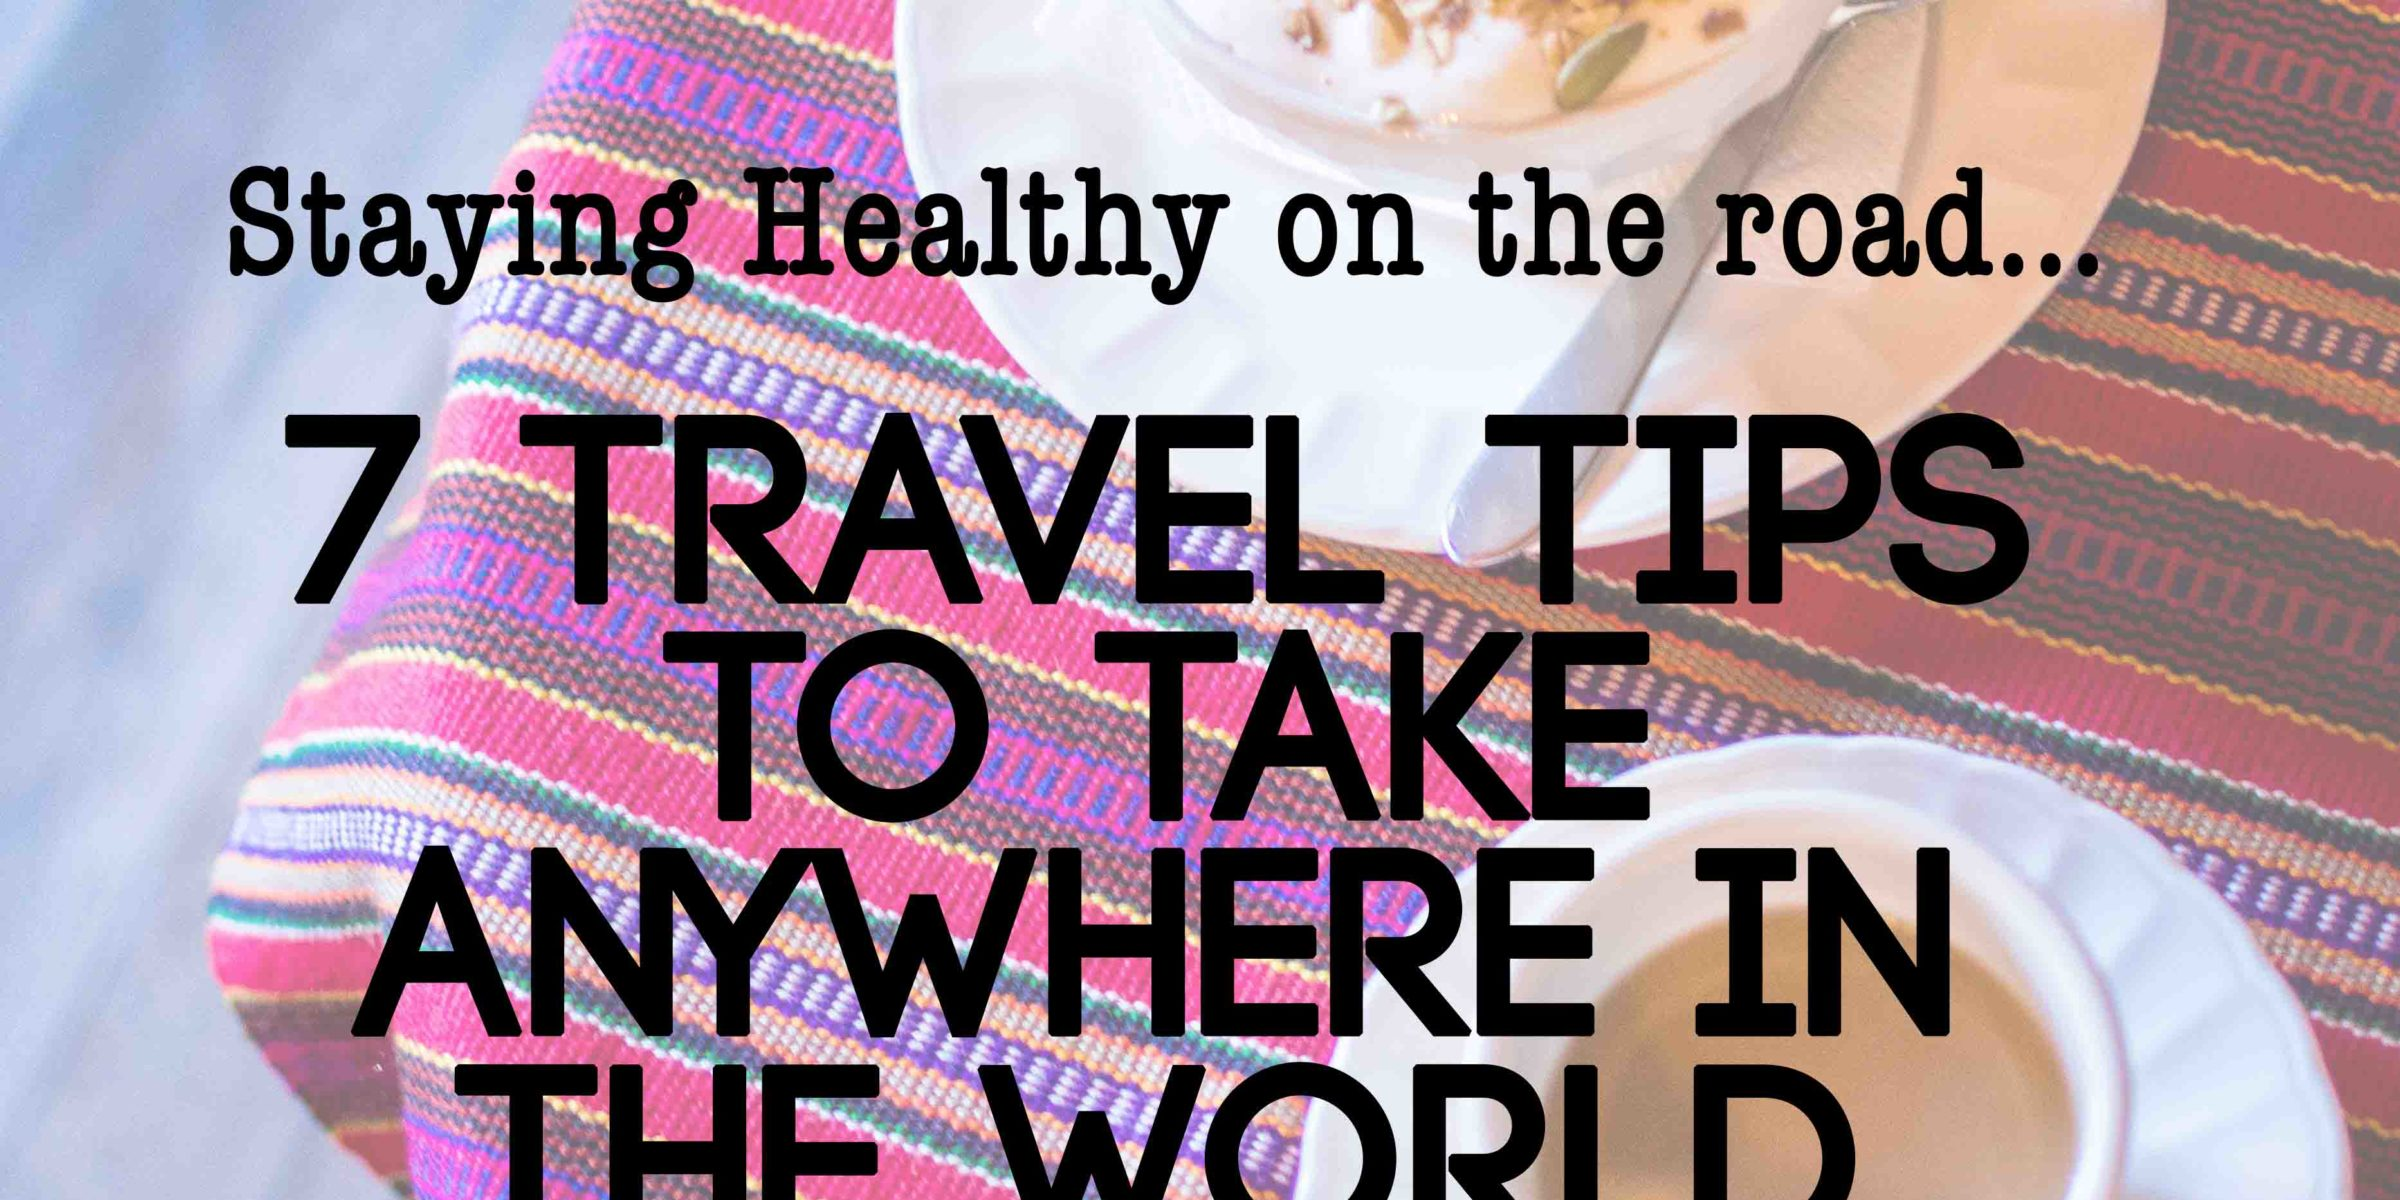 Travel tips to stay healthy anywhere in the world Lauren Rudick